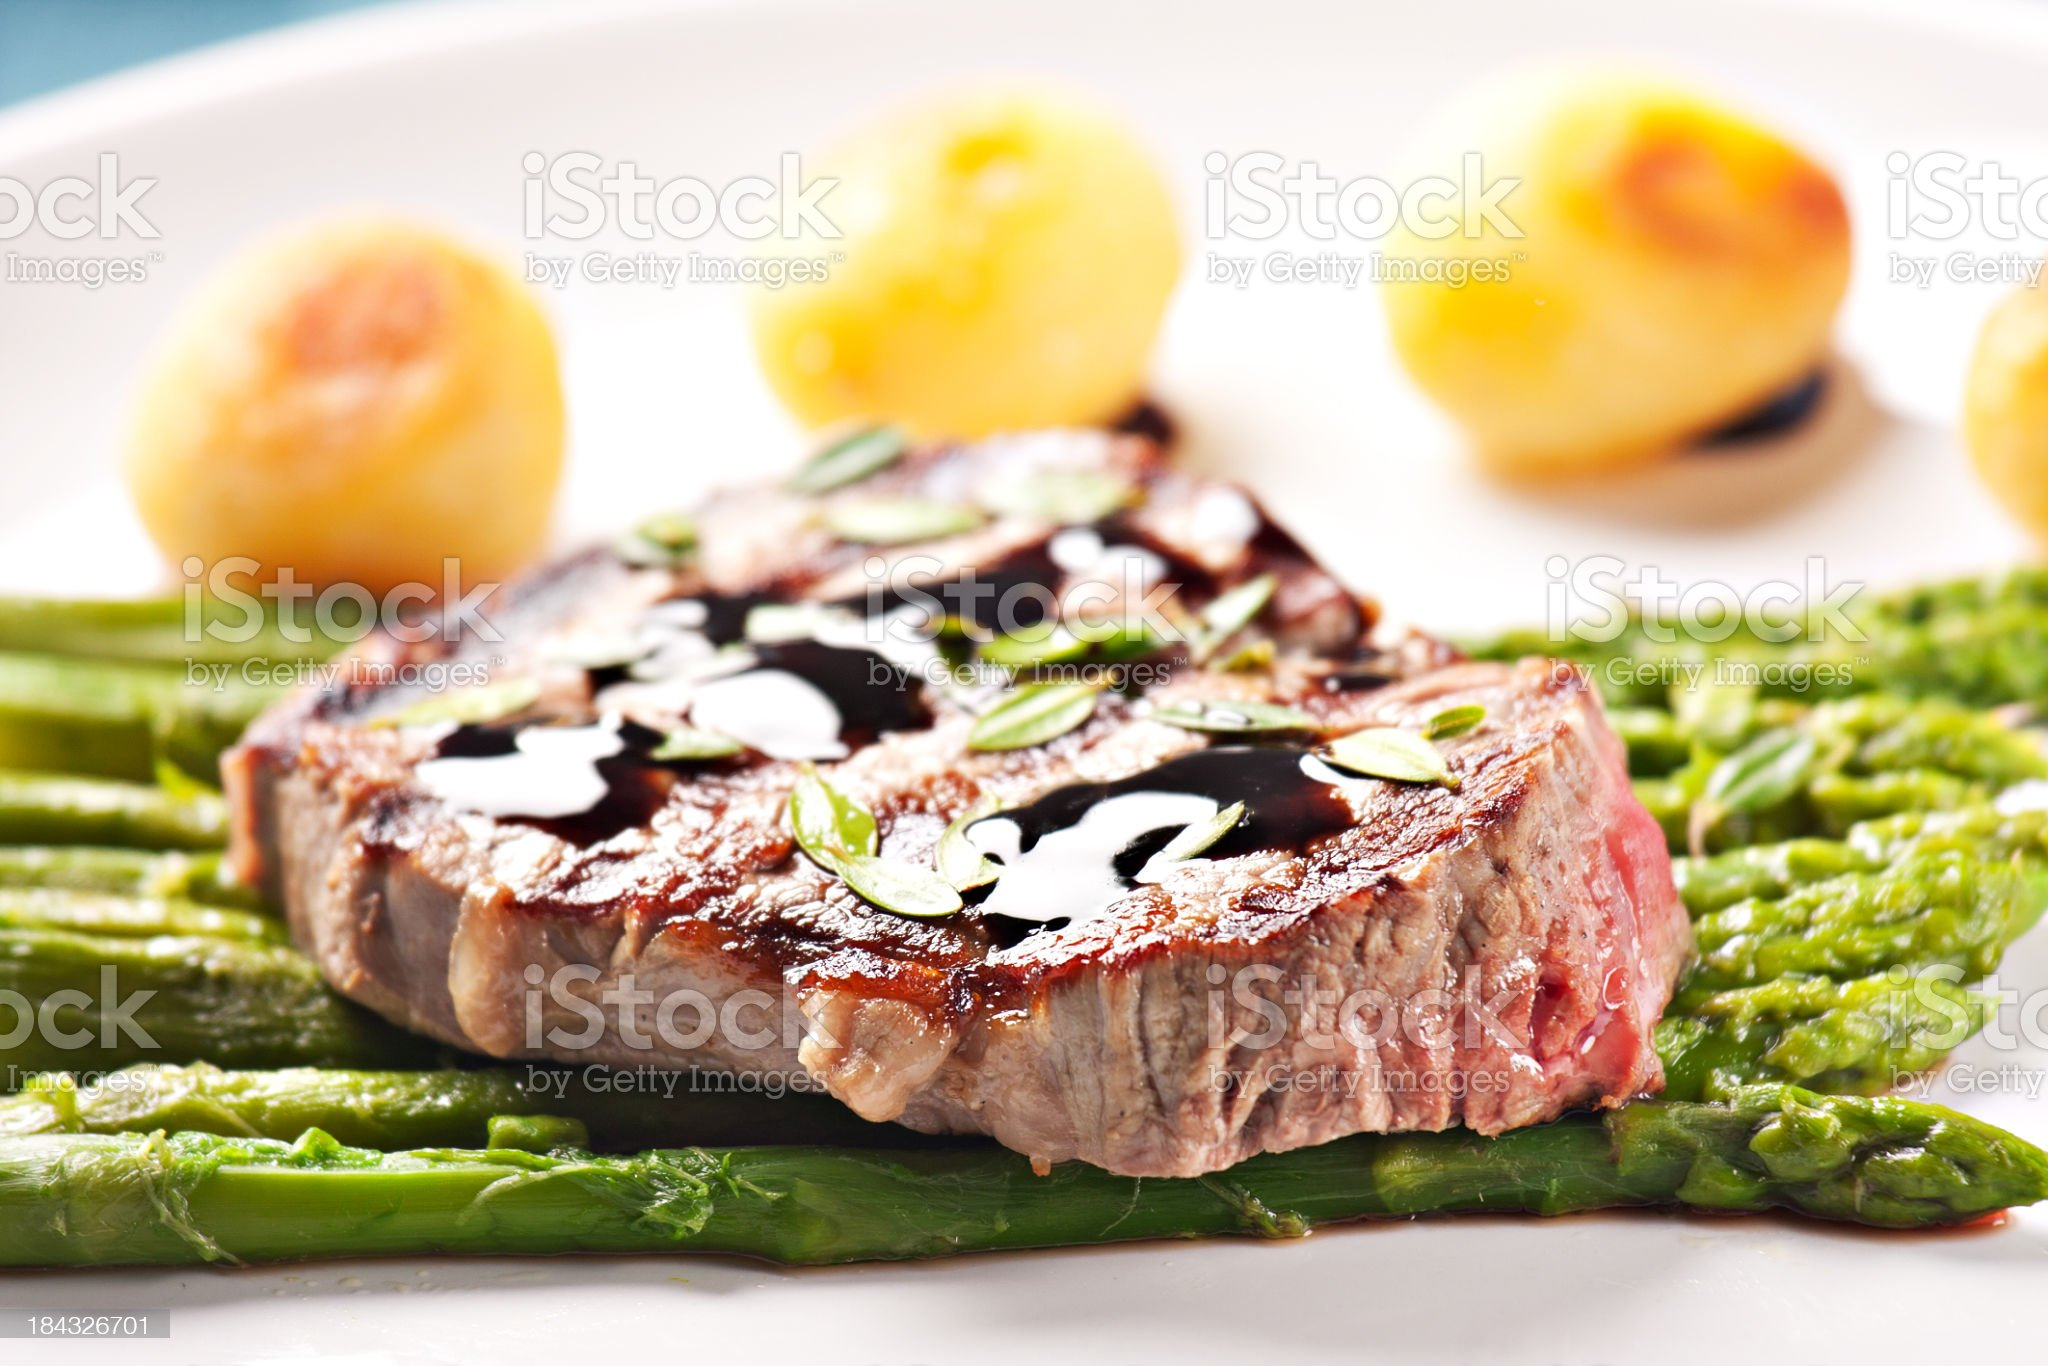 Fillet of beef with asparagus and potatoes royalty-free stock photo